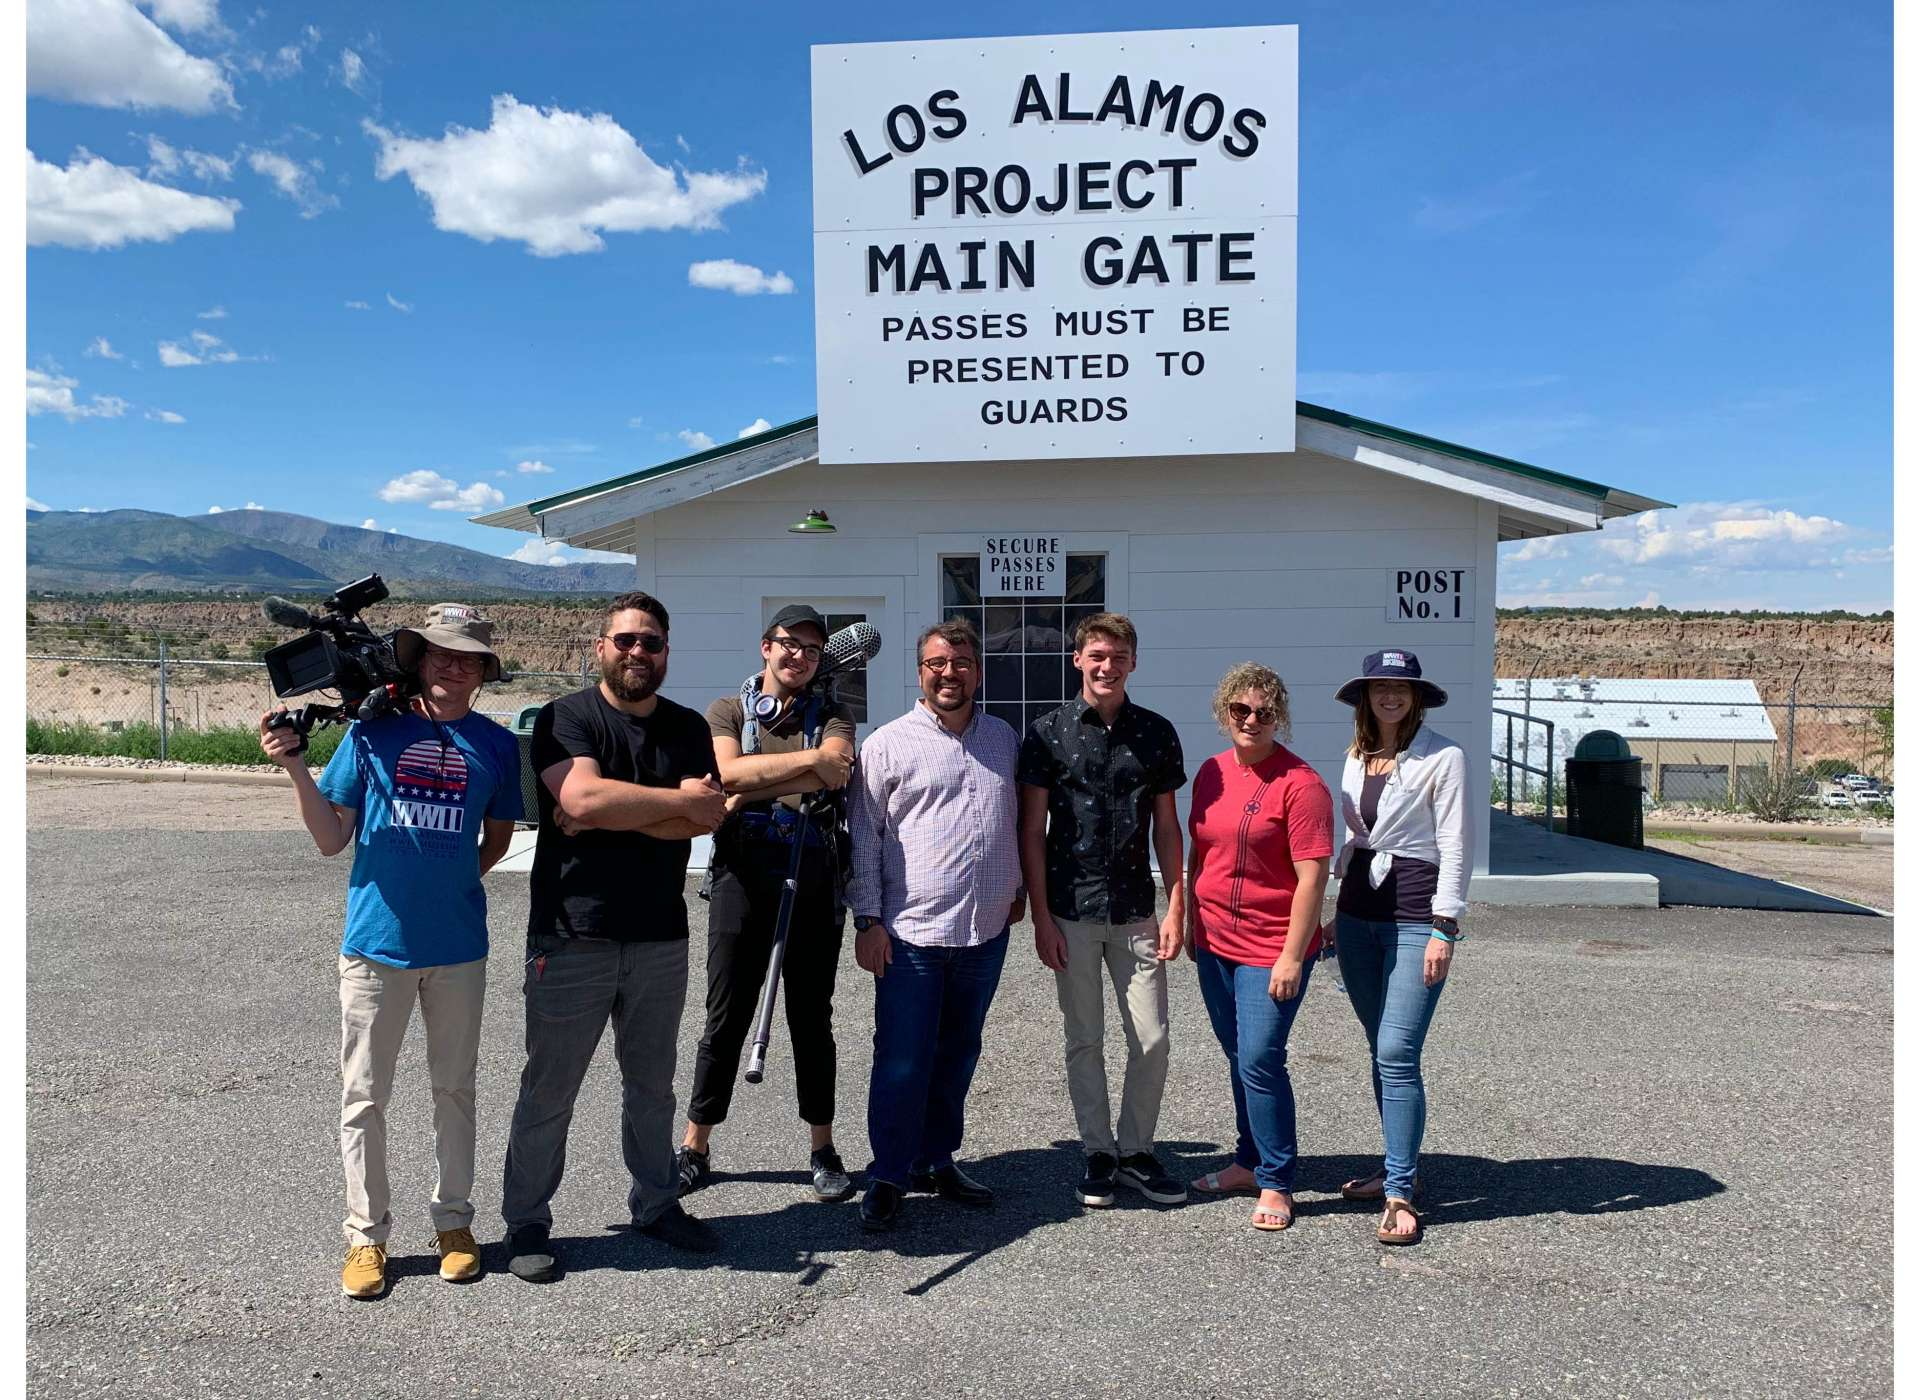 Film crew at the replica guard gate in Los Alamos, New Mexico